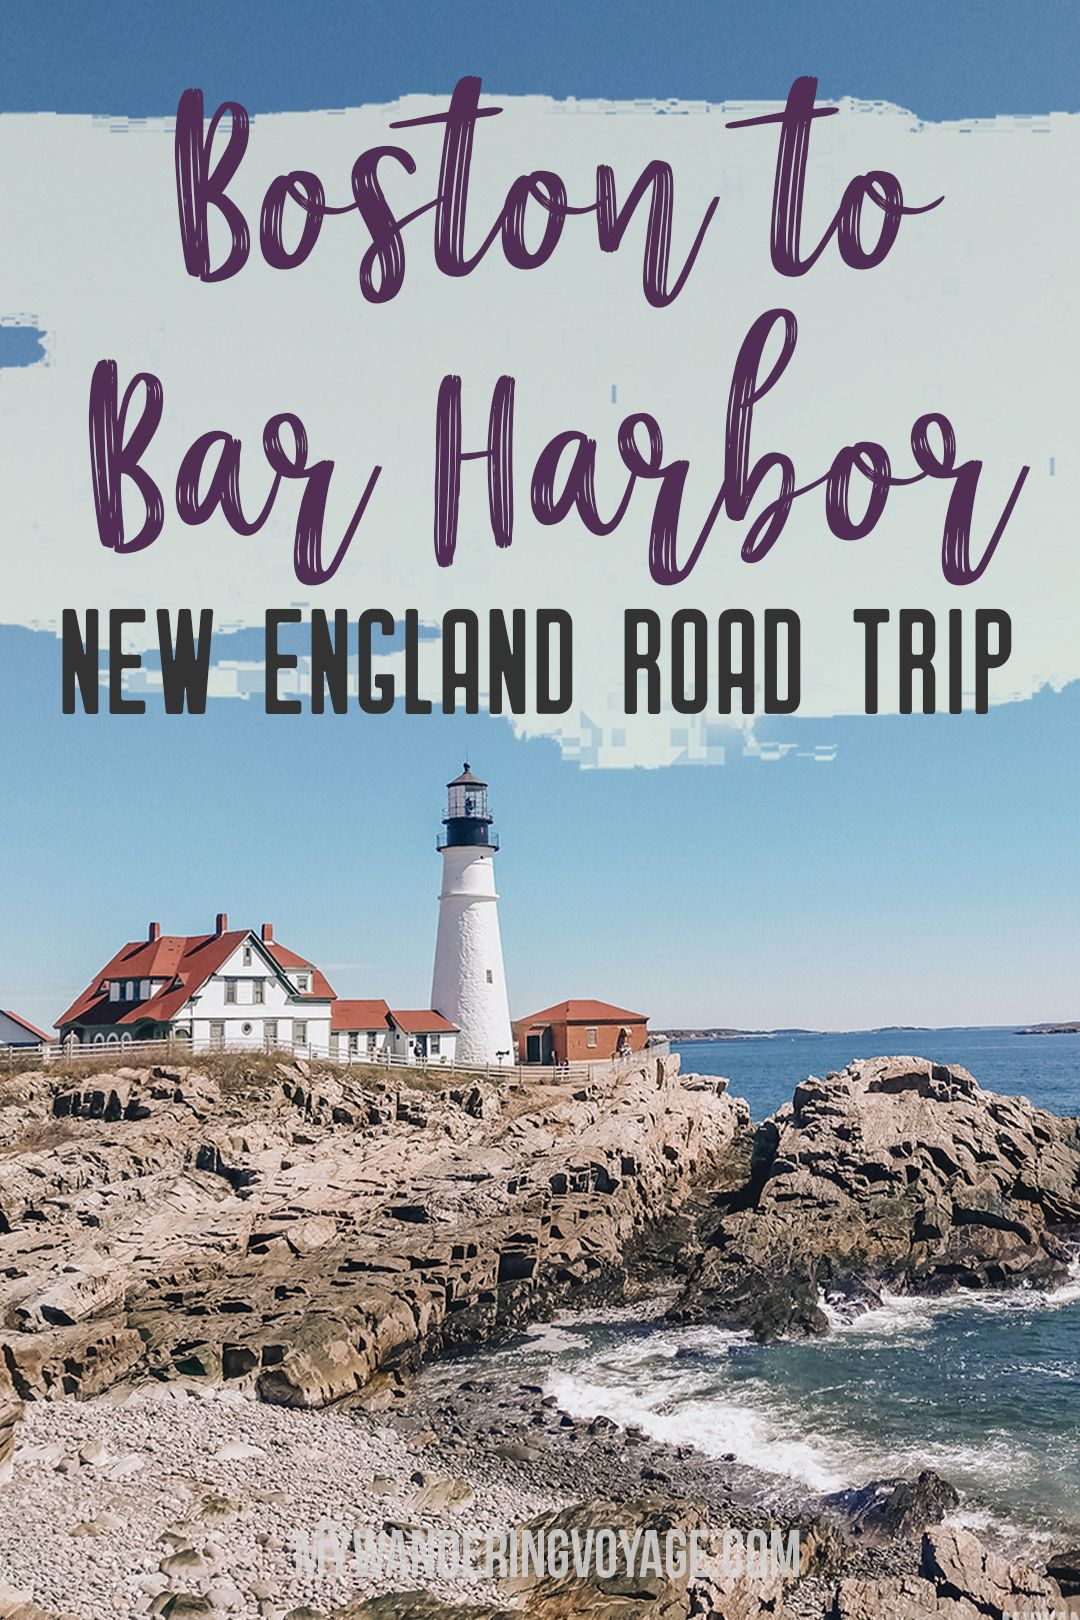 From Boston to Bar Harbor: a New England road trip [+Map]